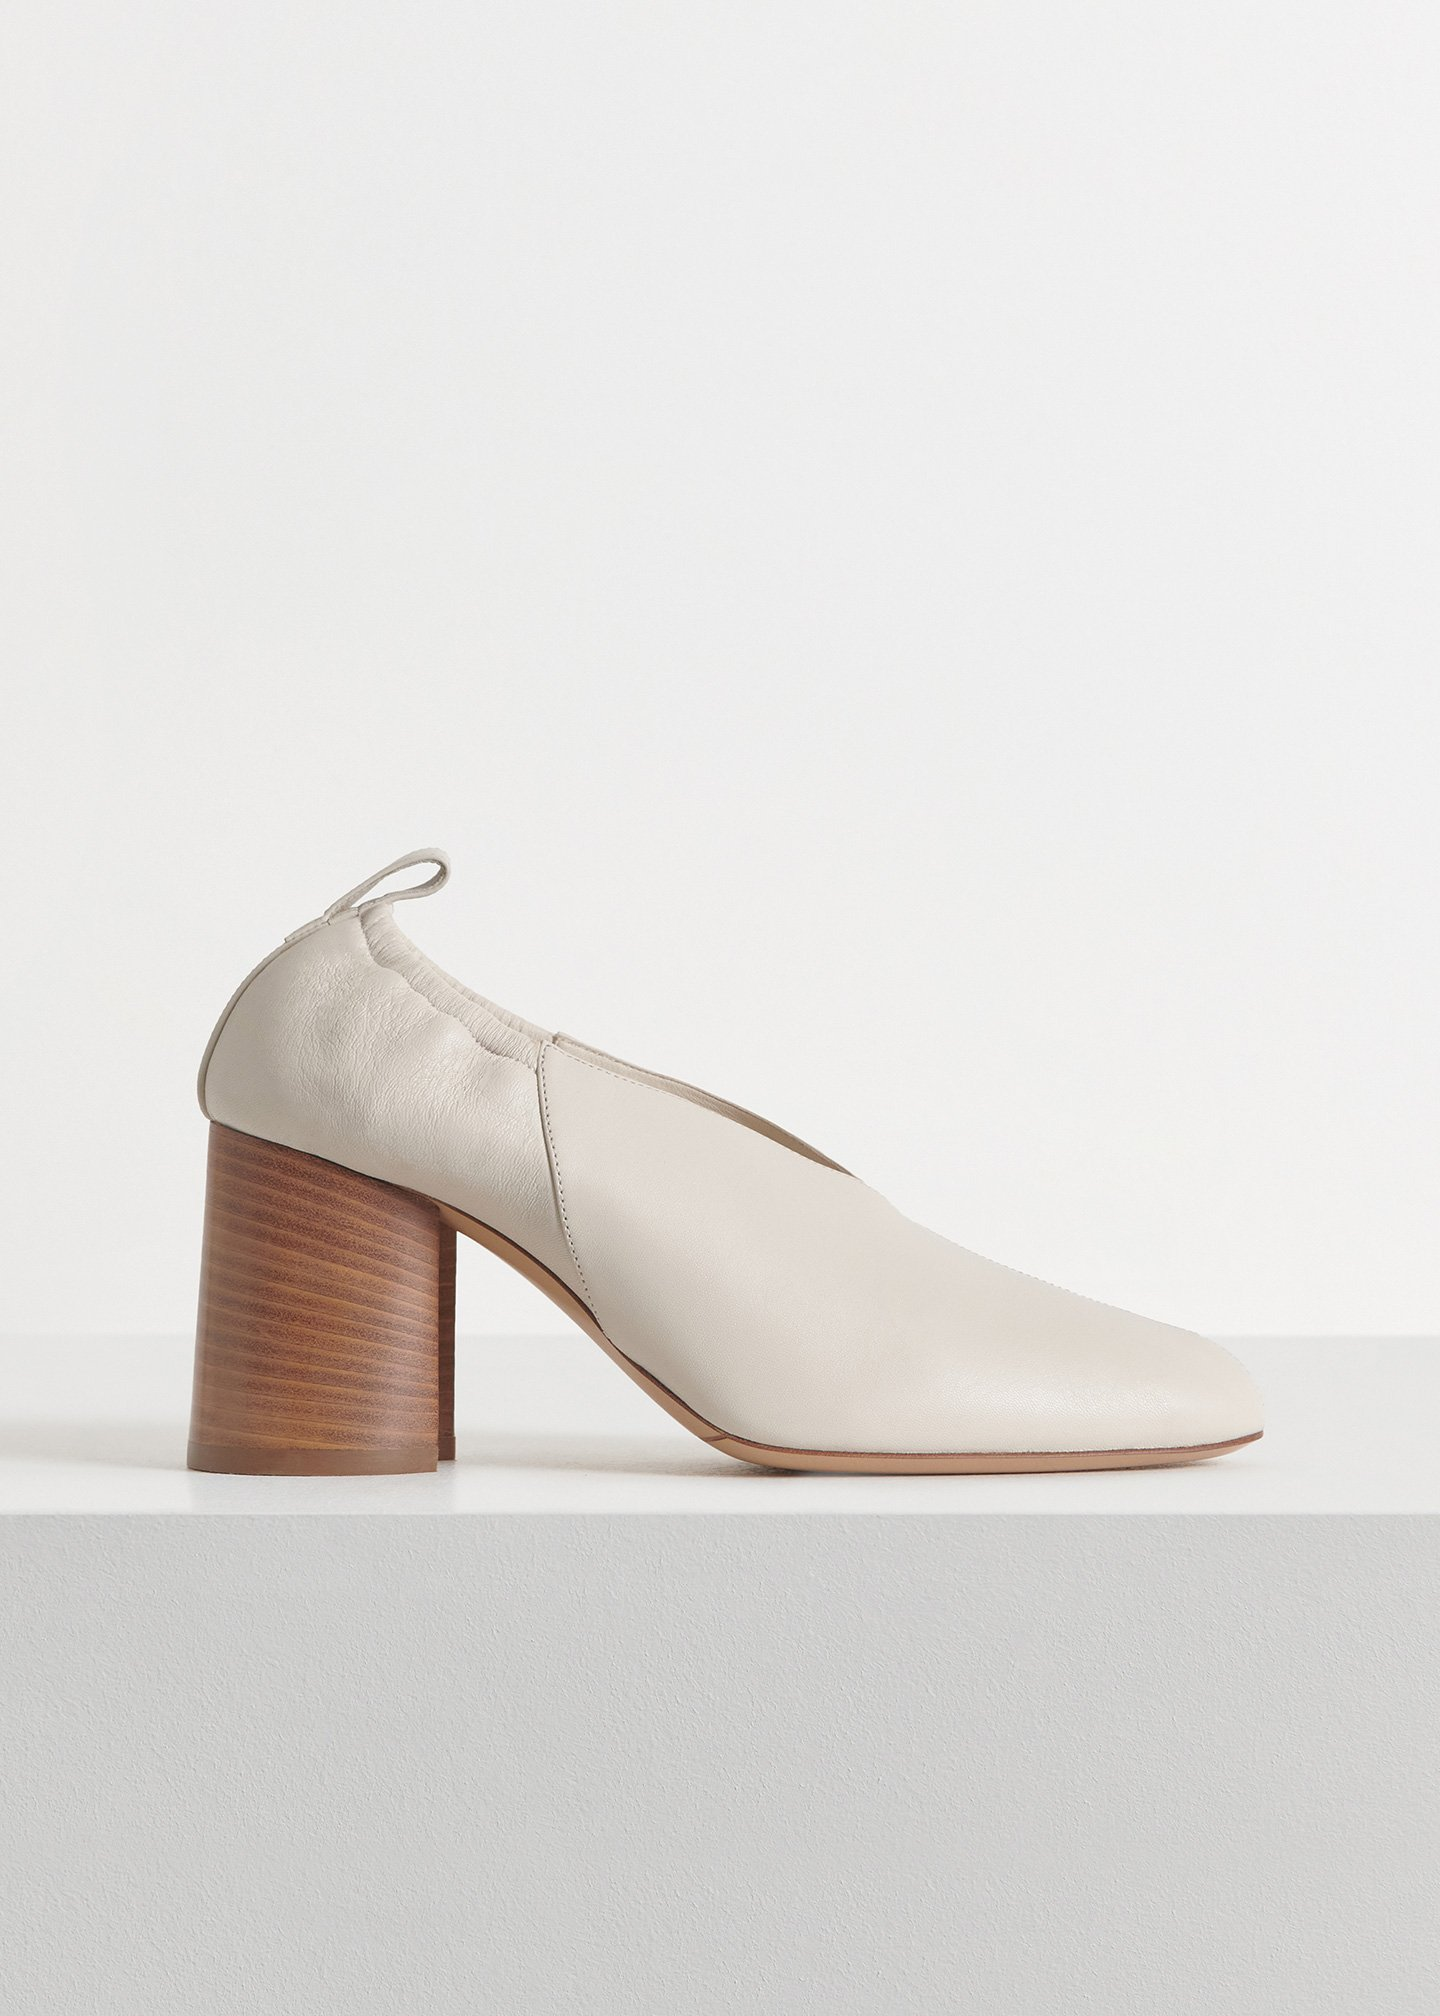 Slit Heel in Smooth Leather - Black in Ivory by Co Collections